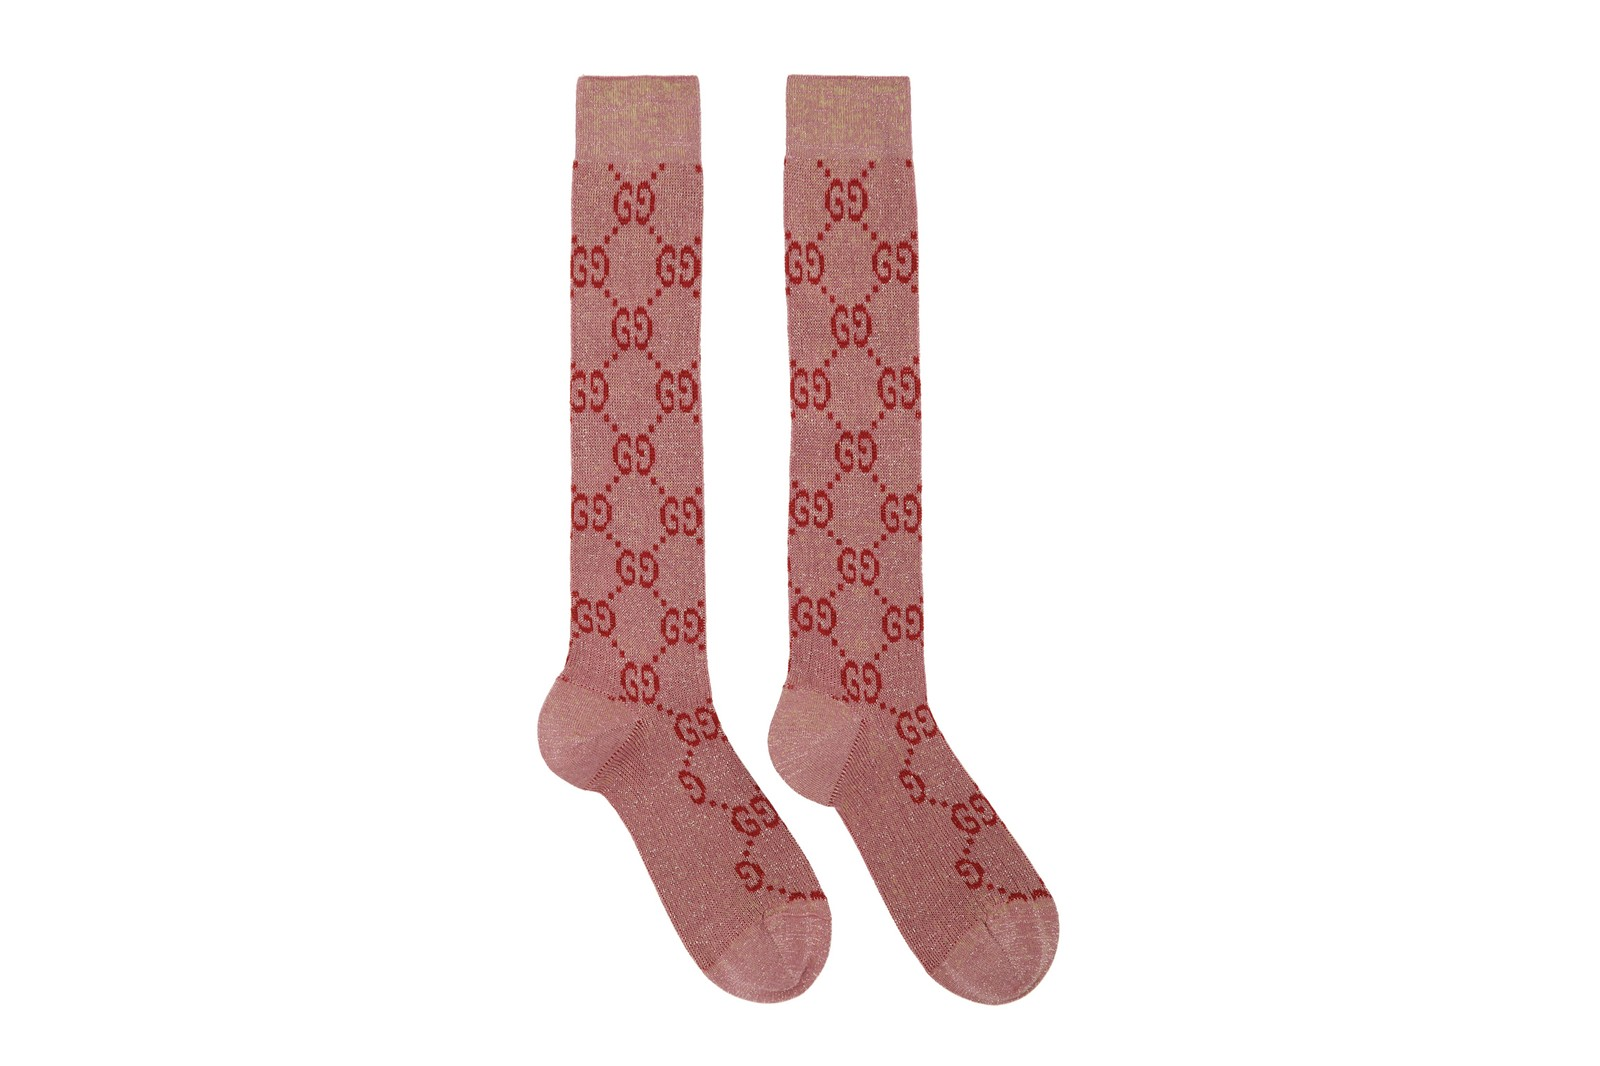 5 Luxury Socks from Gucci, Off-White, Fendi Footwear Accessories Print Fashion Detail Where to Buy SSENSE